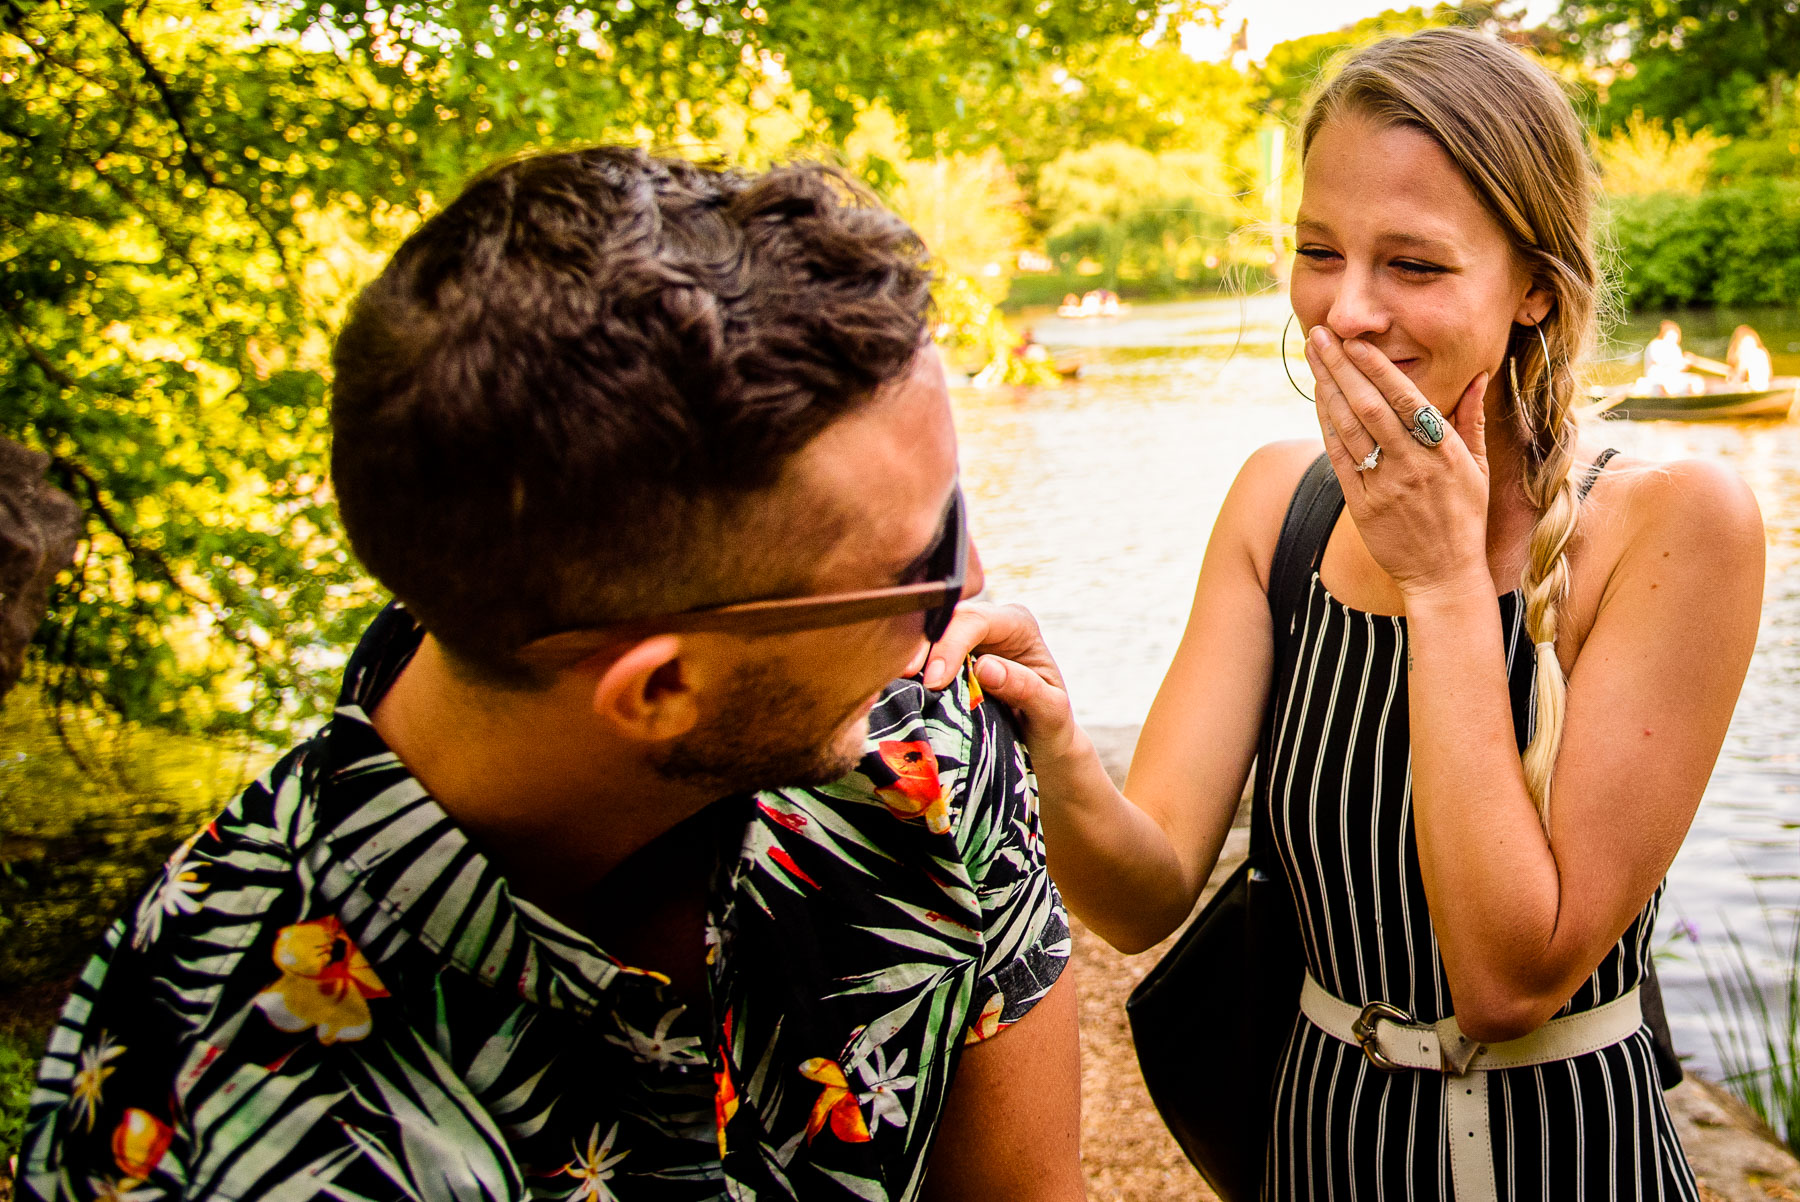 Central Park NYC Proposal girl reacts